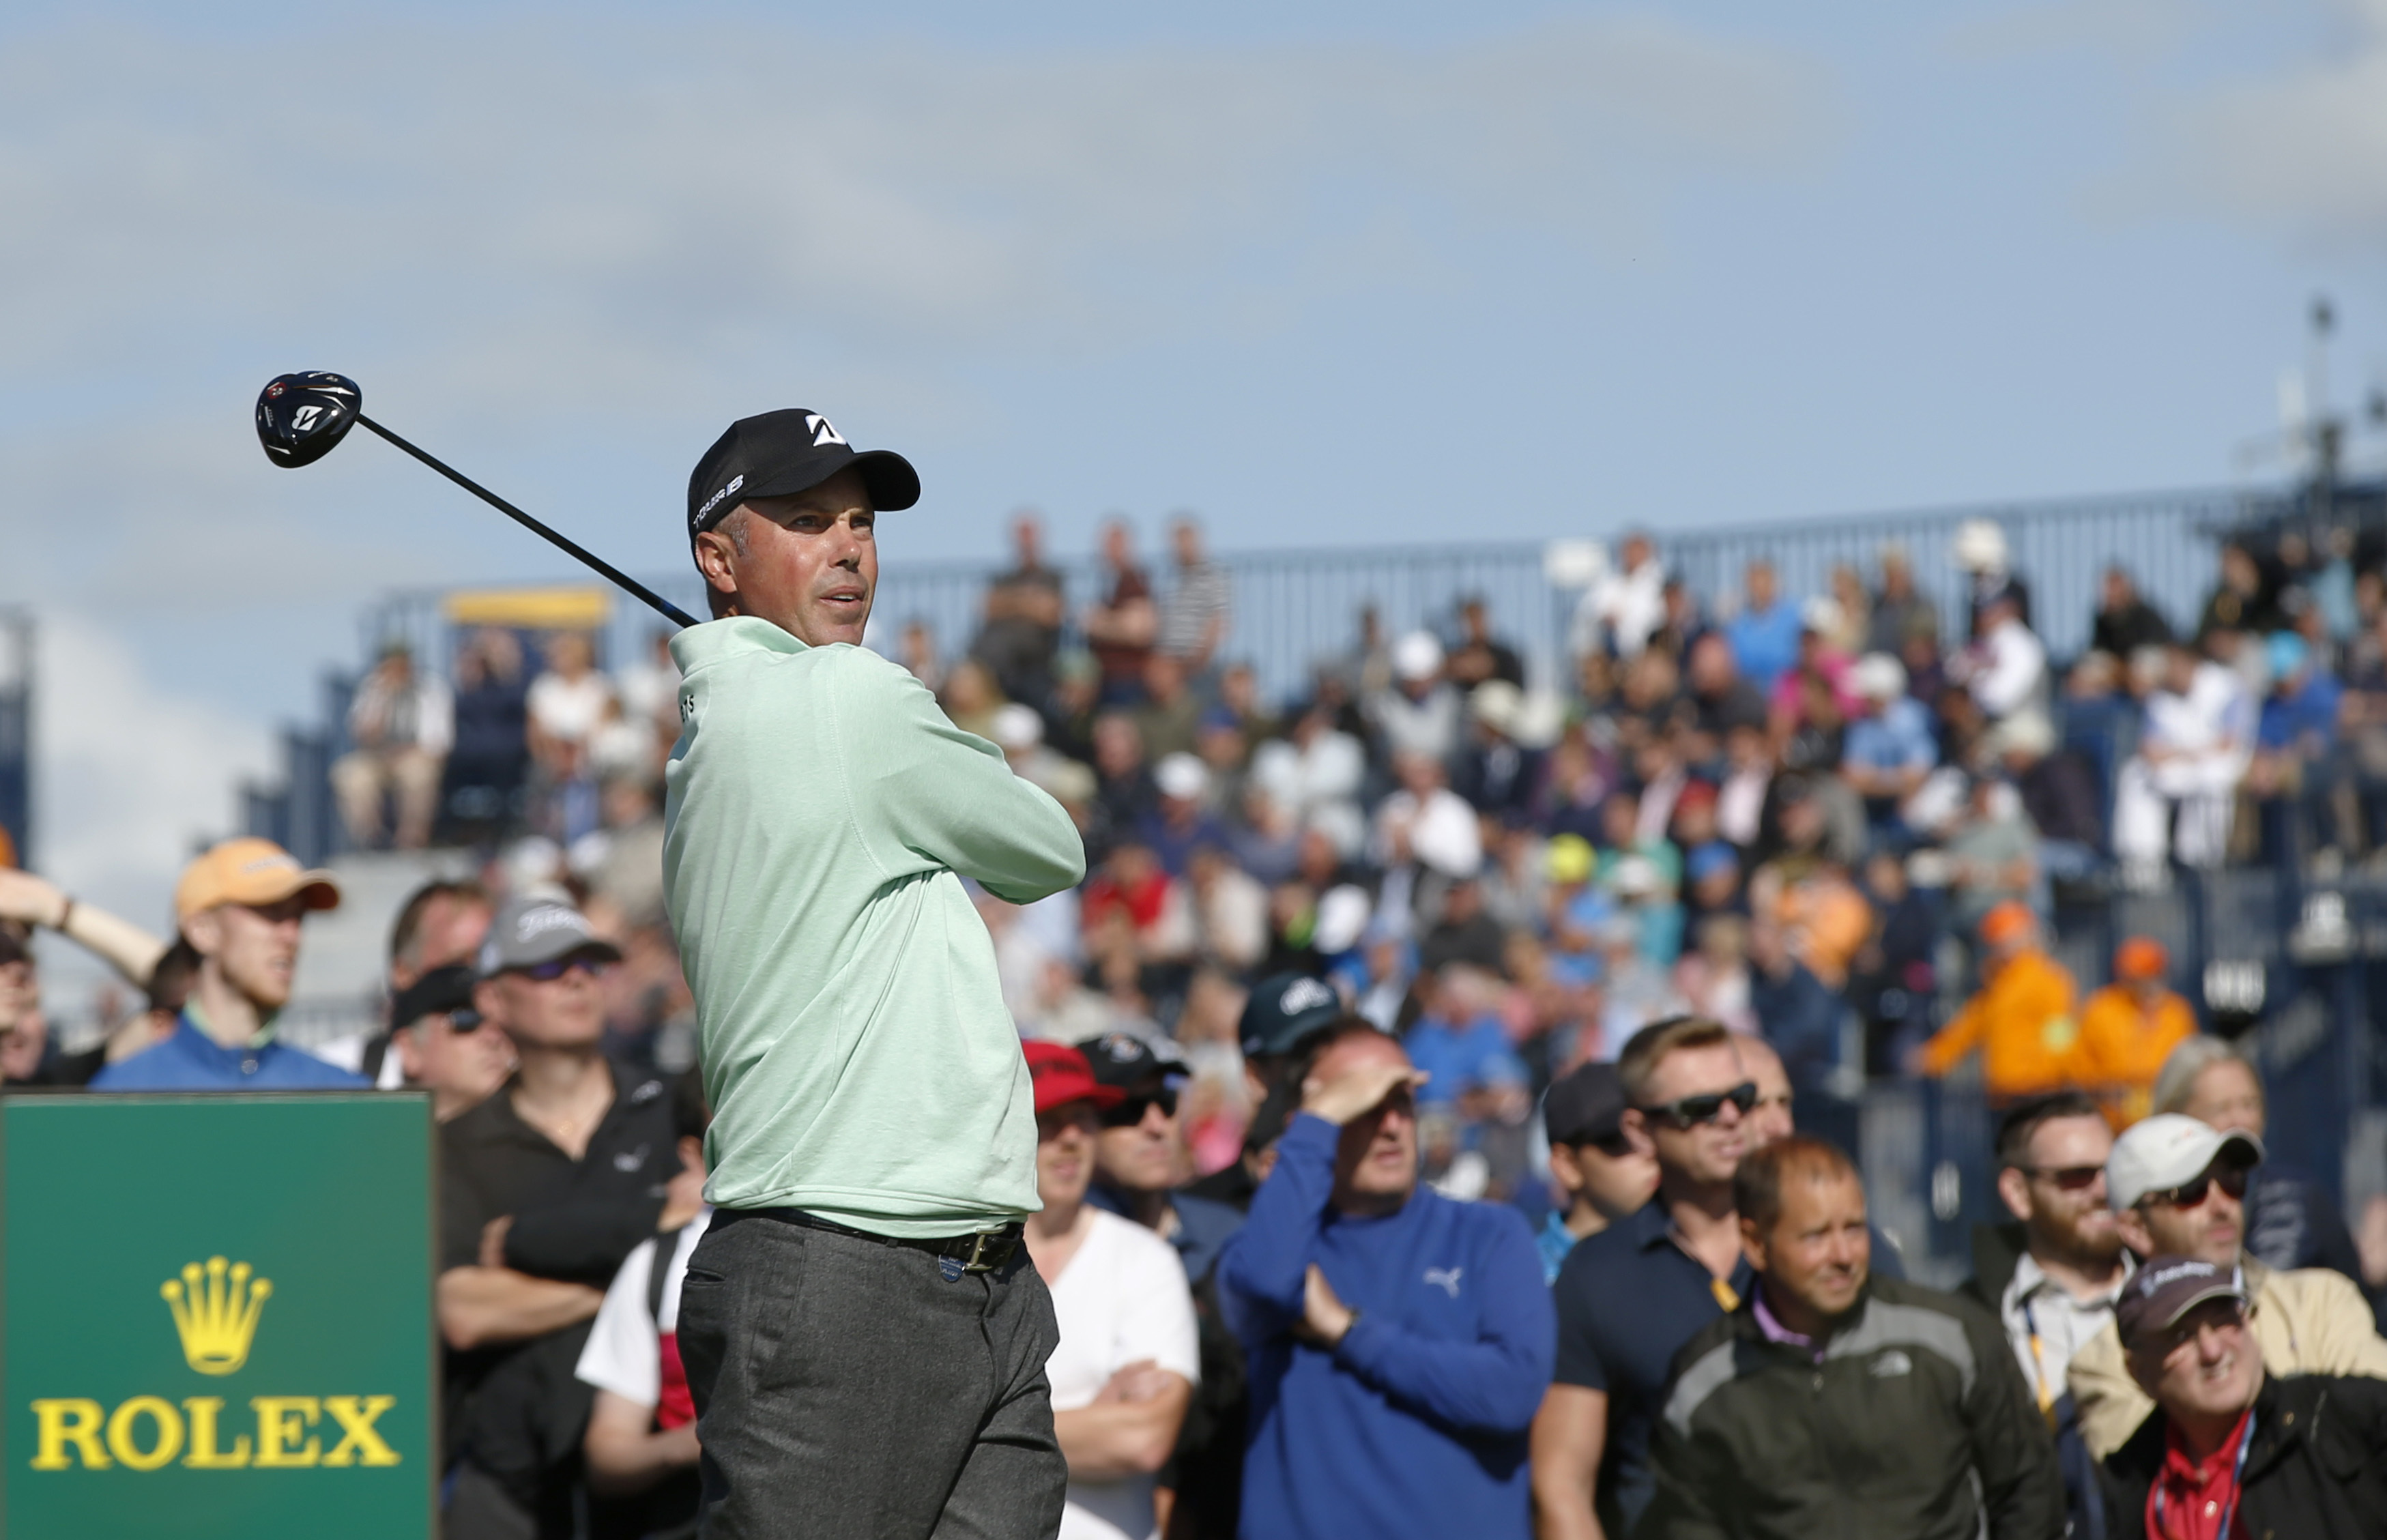 Matt Kuchar of the United States plays off the 15th tee during the first round of the British Open Golf Championship, at Royal Birkdale, Southport, England Thursday, July 20, 2017. (AP Photo/Alastair Grant)